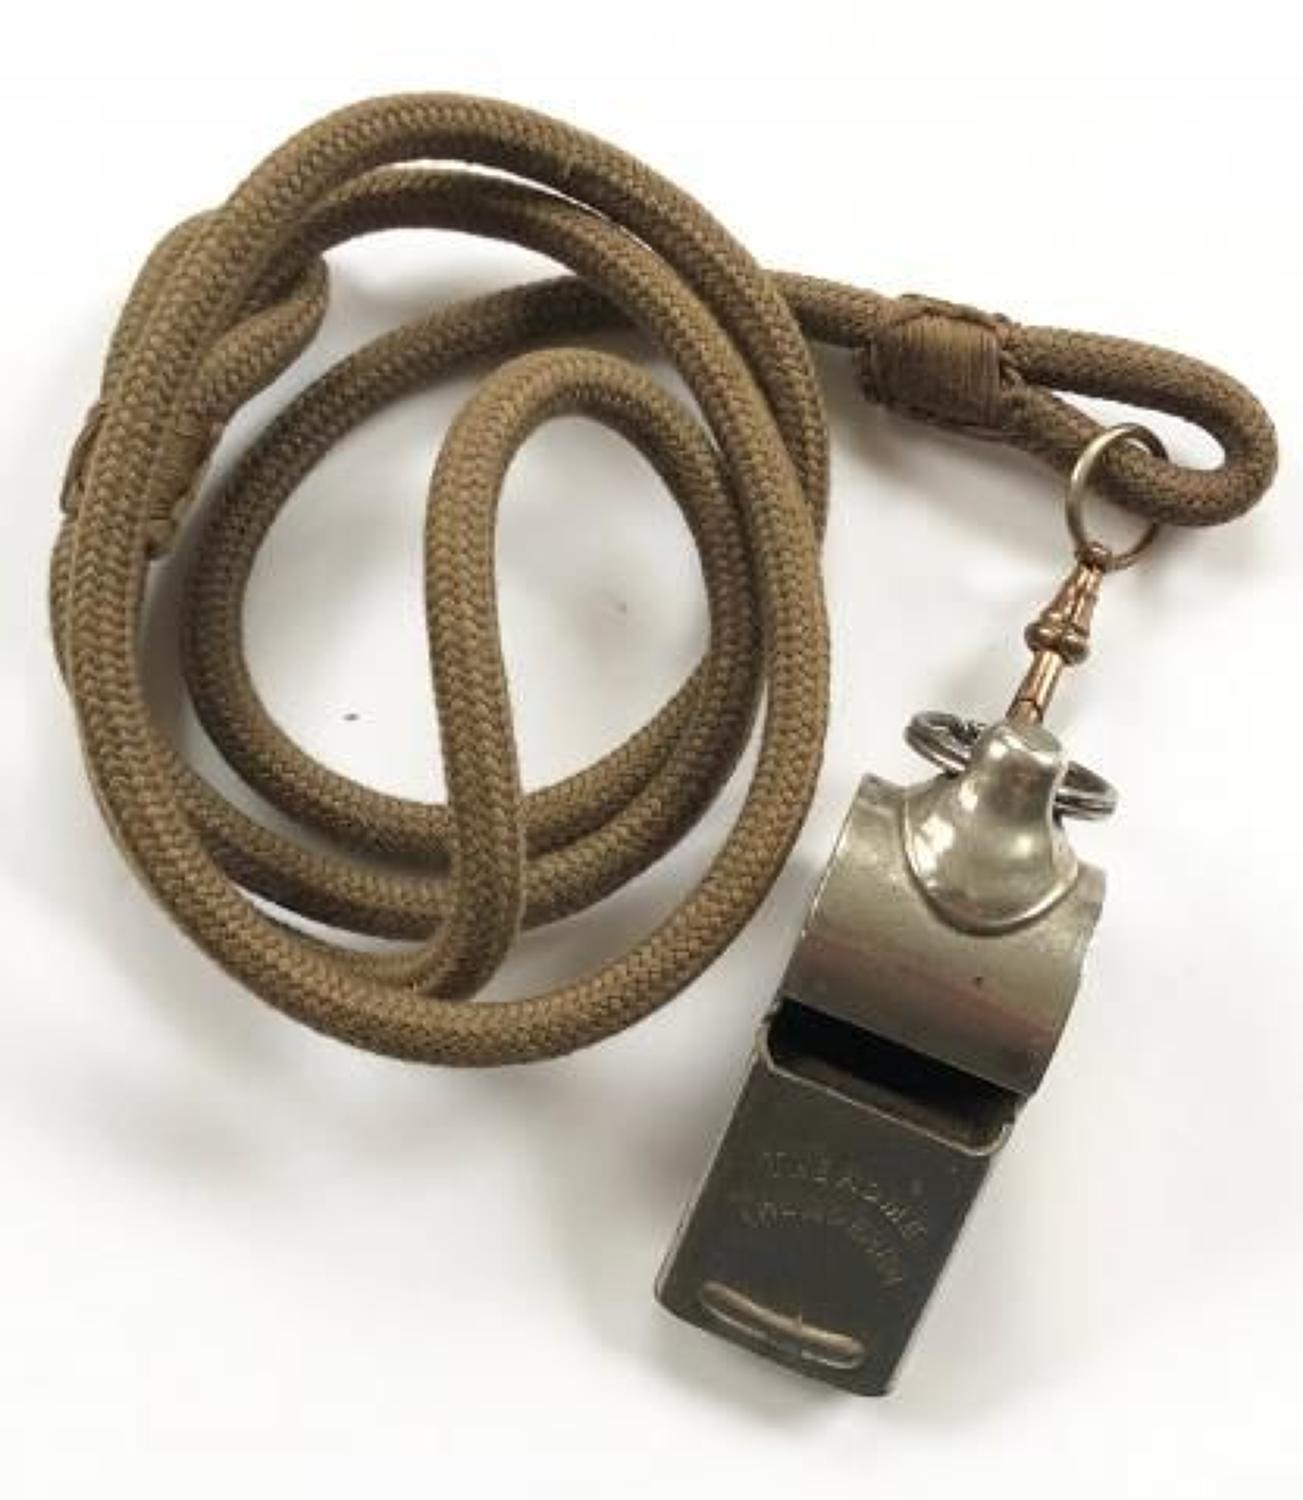 WW1 / WW2 British Army Officer's Whistle Lanyard.